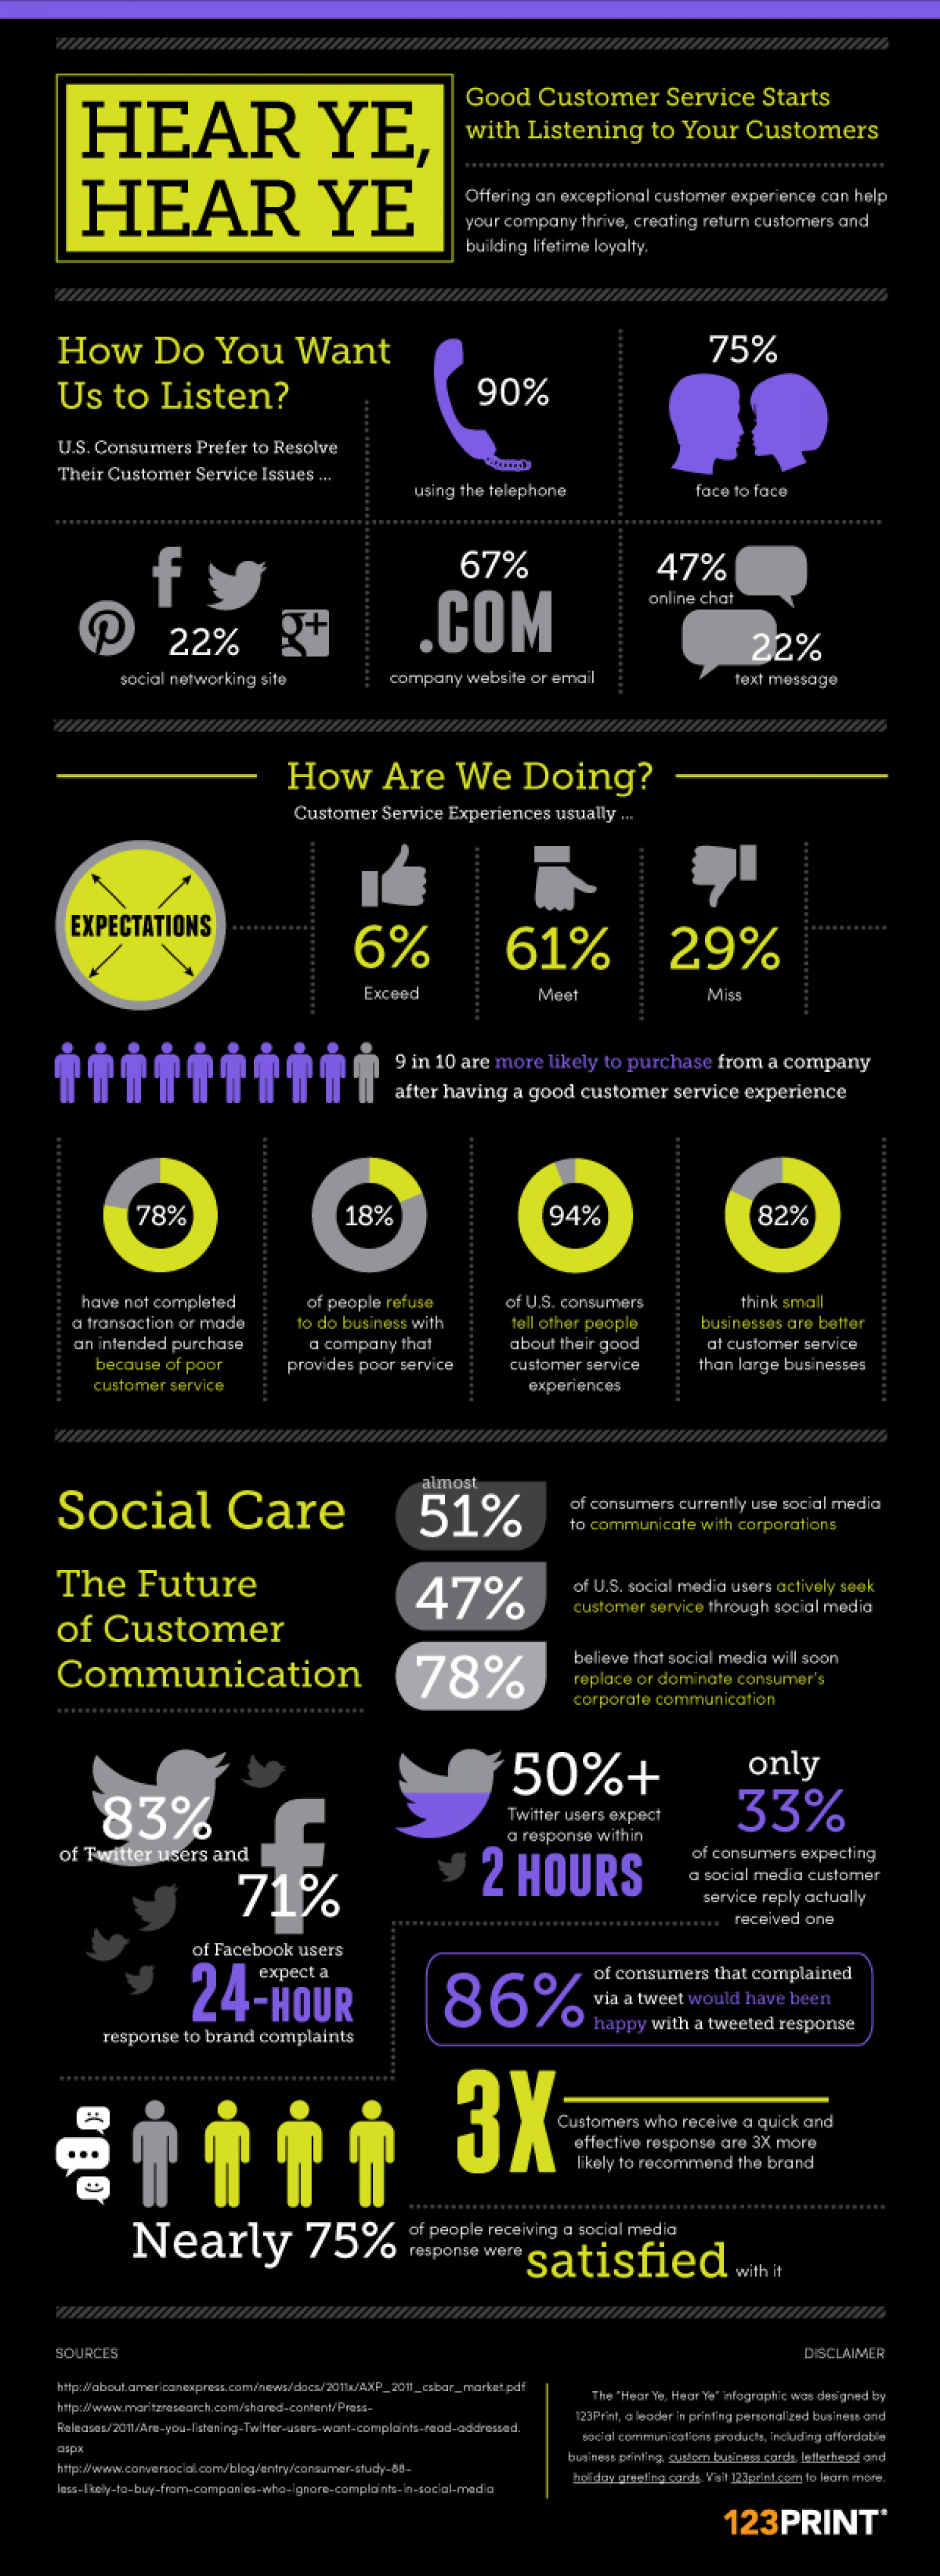 Good Customer Service Starts with Listening to Your Customers Infographic